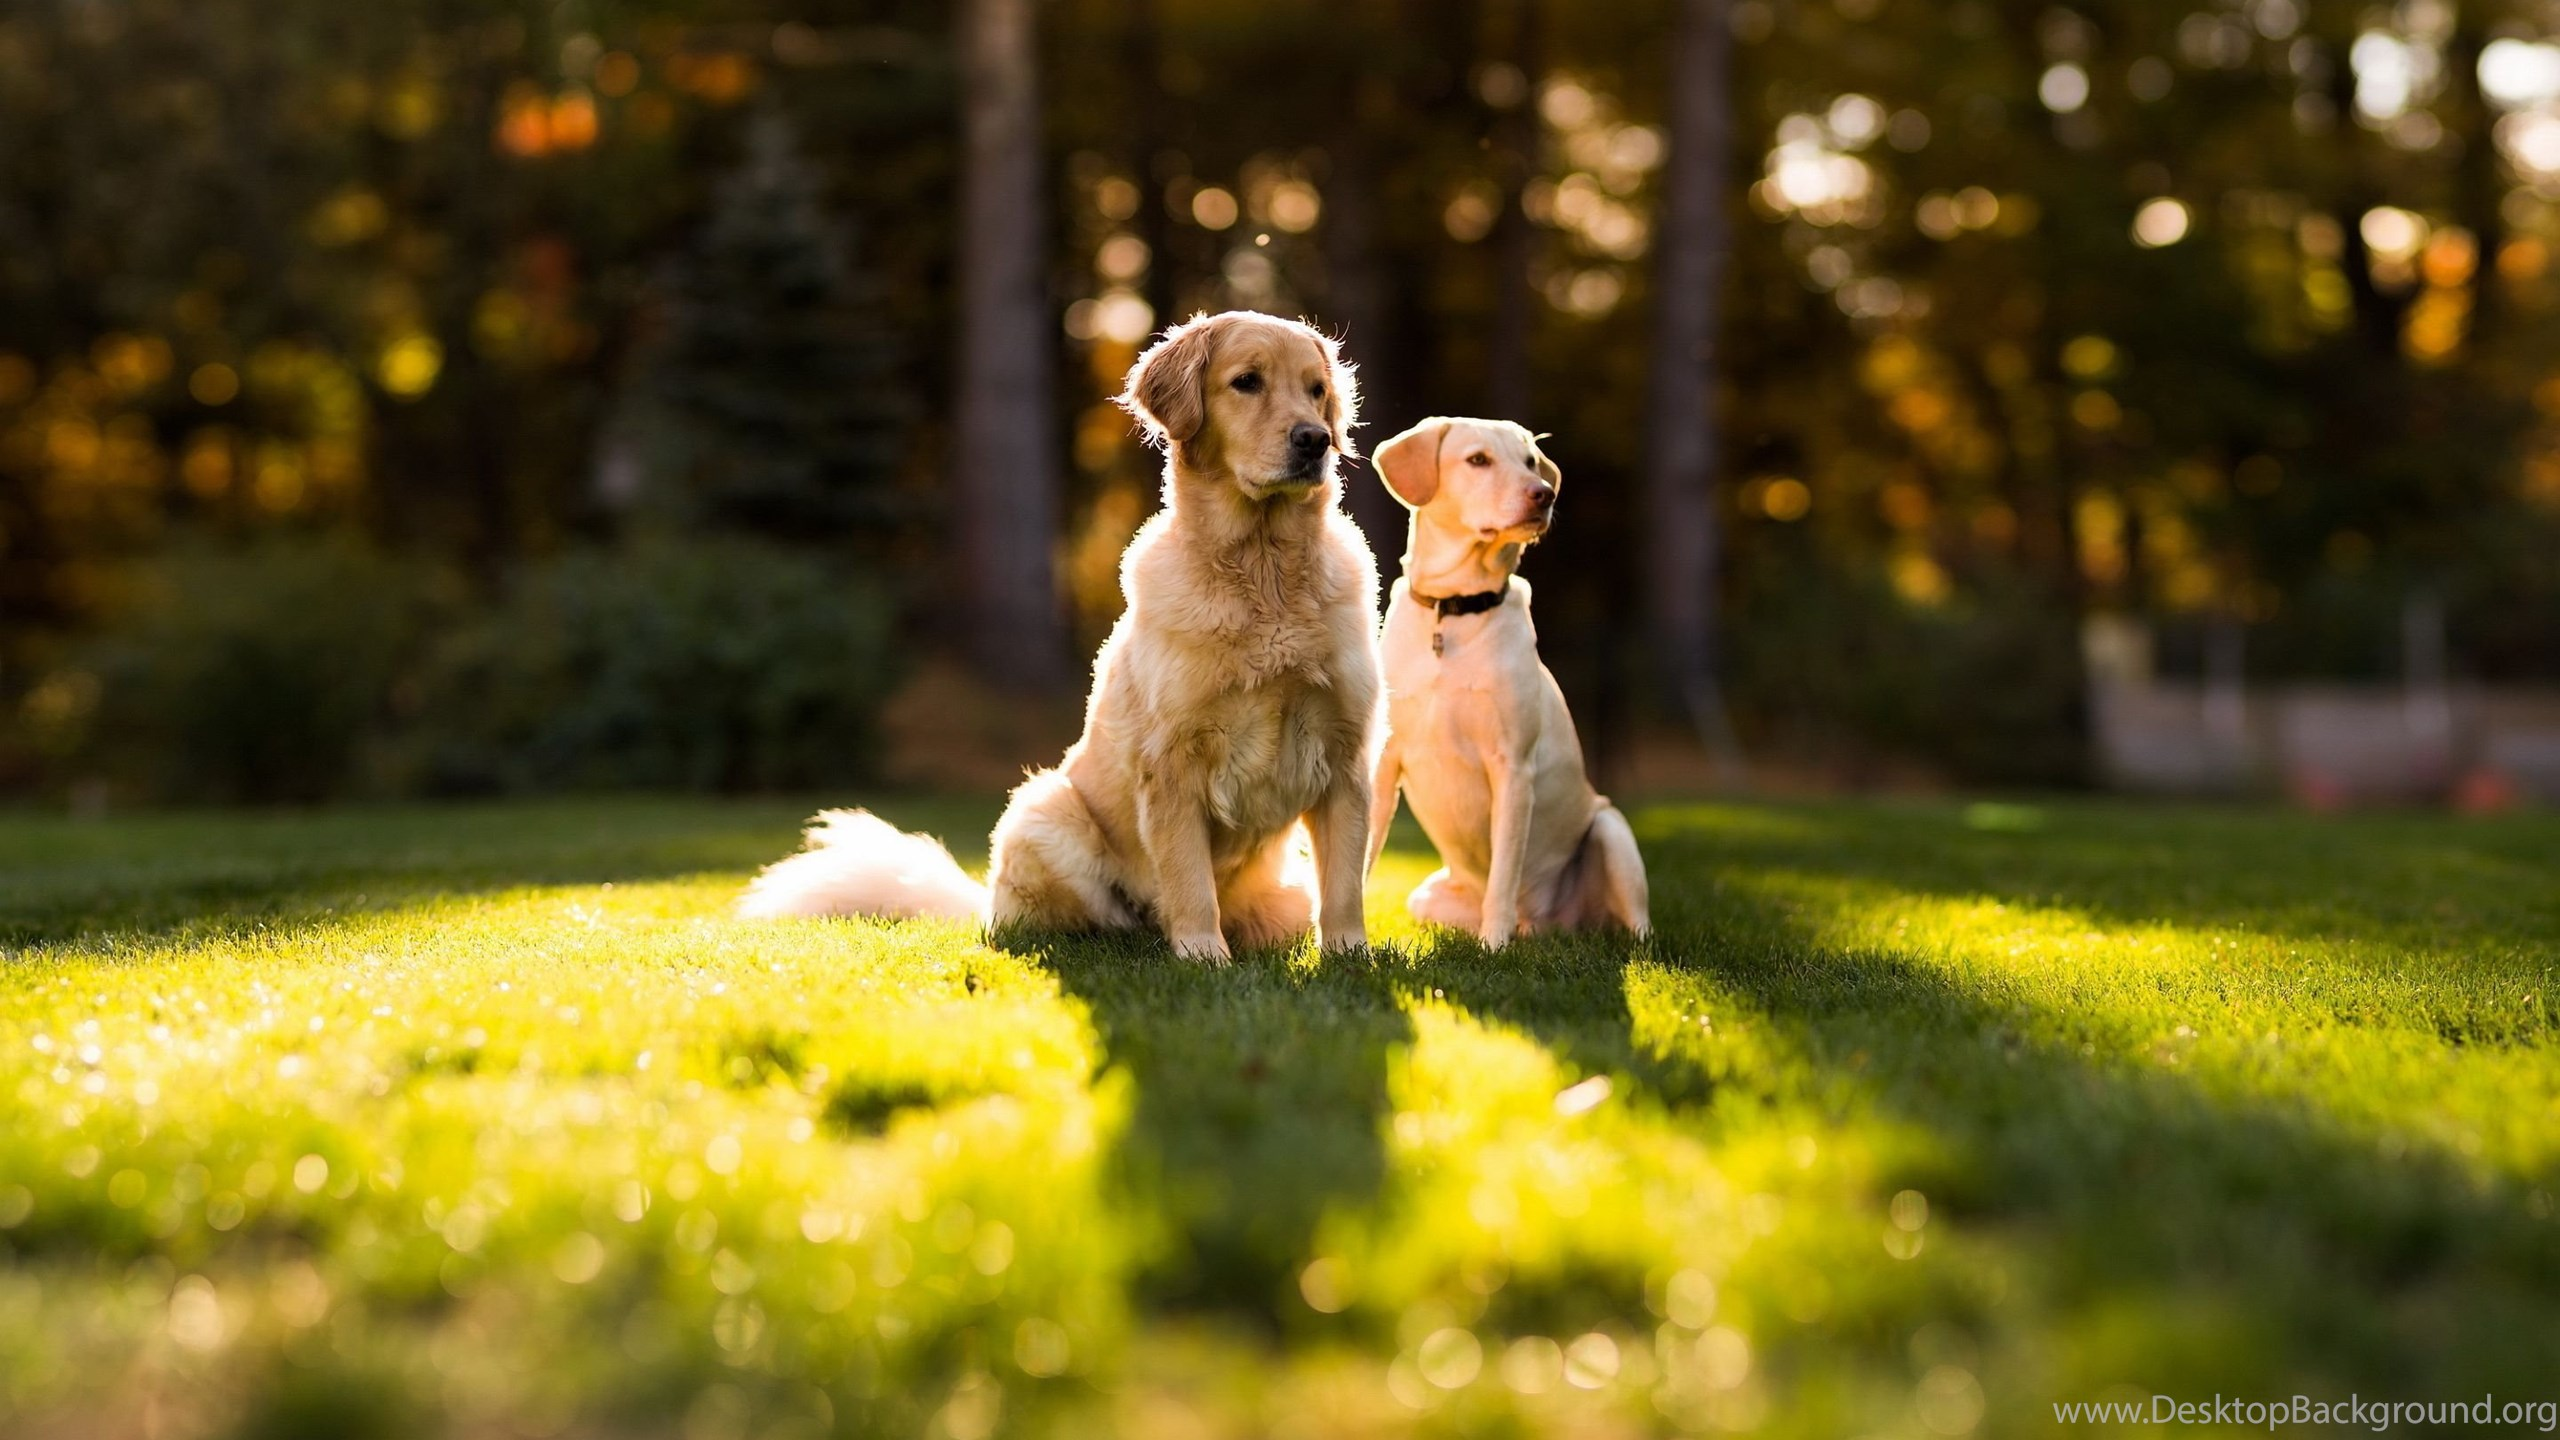 Golden Retriever Dog Hd Wallpapers New Wallpapers New Wallpapers